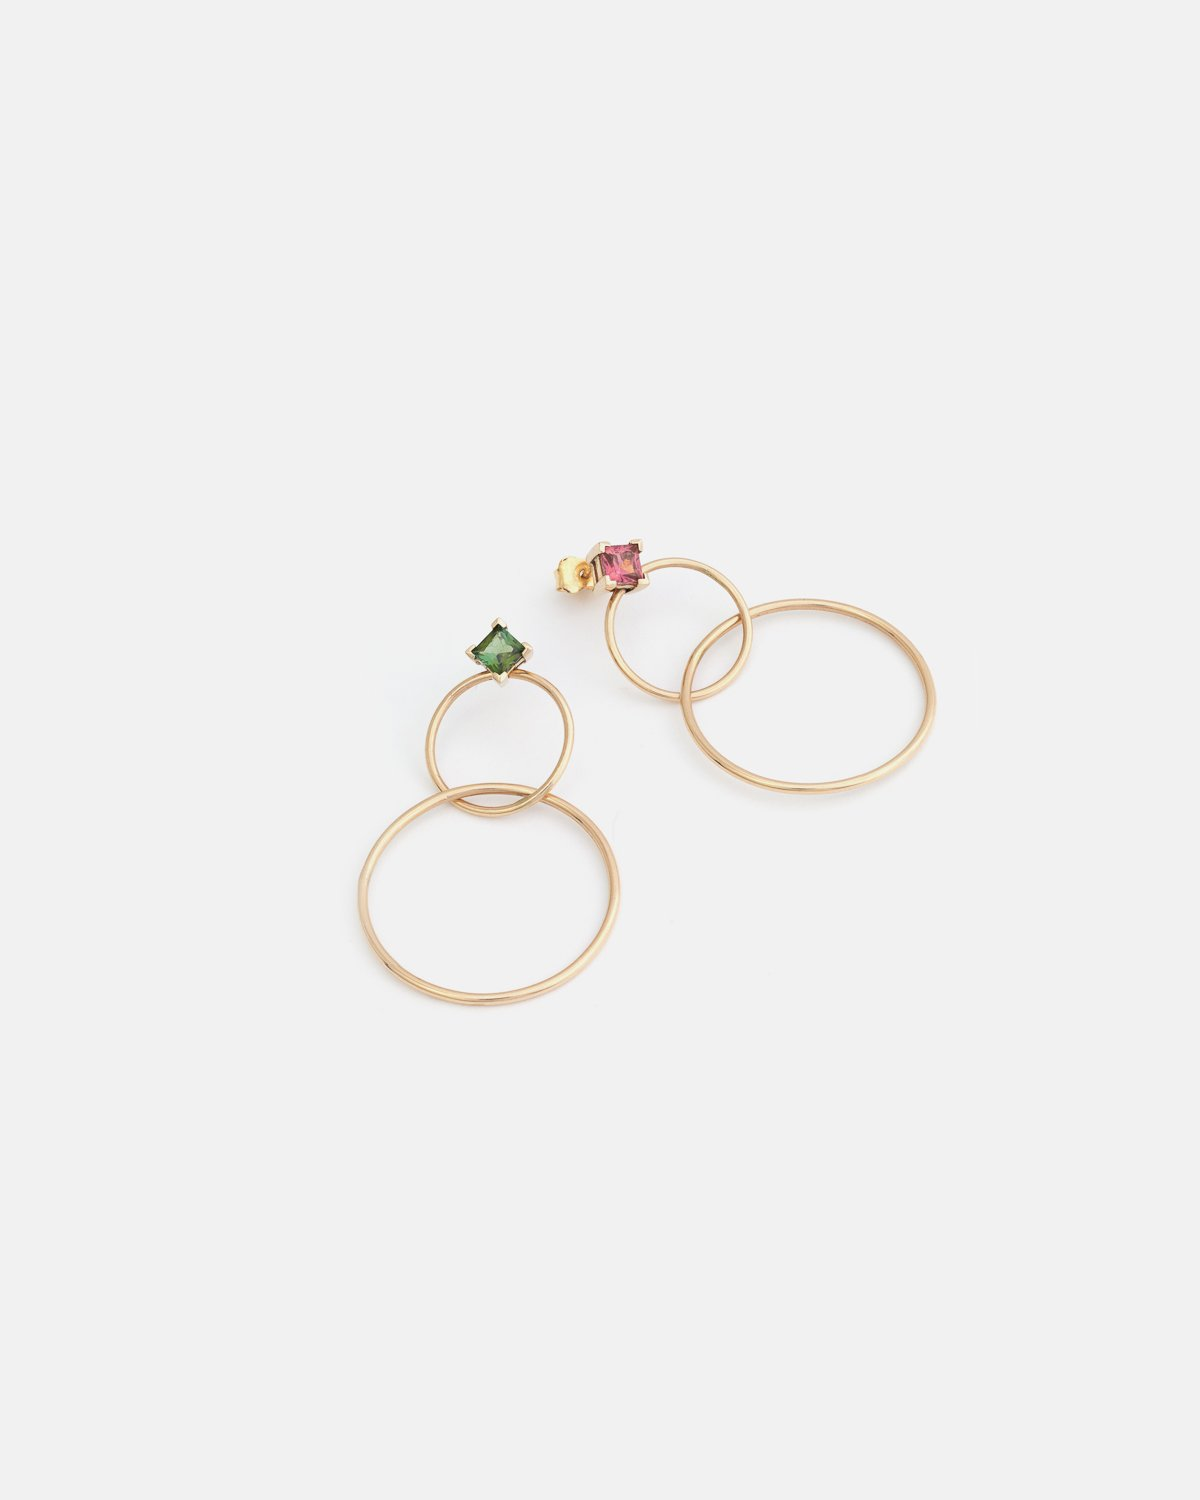 Hydromel Double Earrings in Yellow Gold with Pink and Green Tourmalines